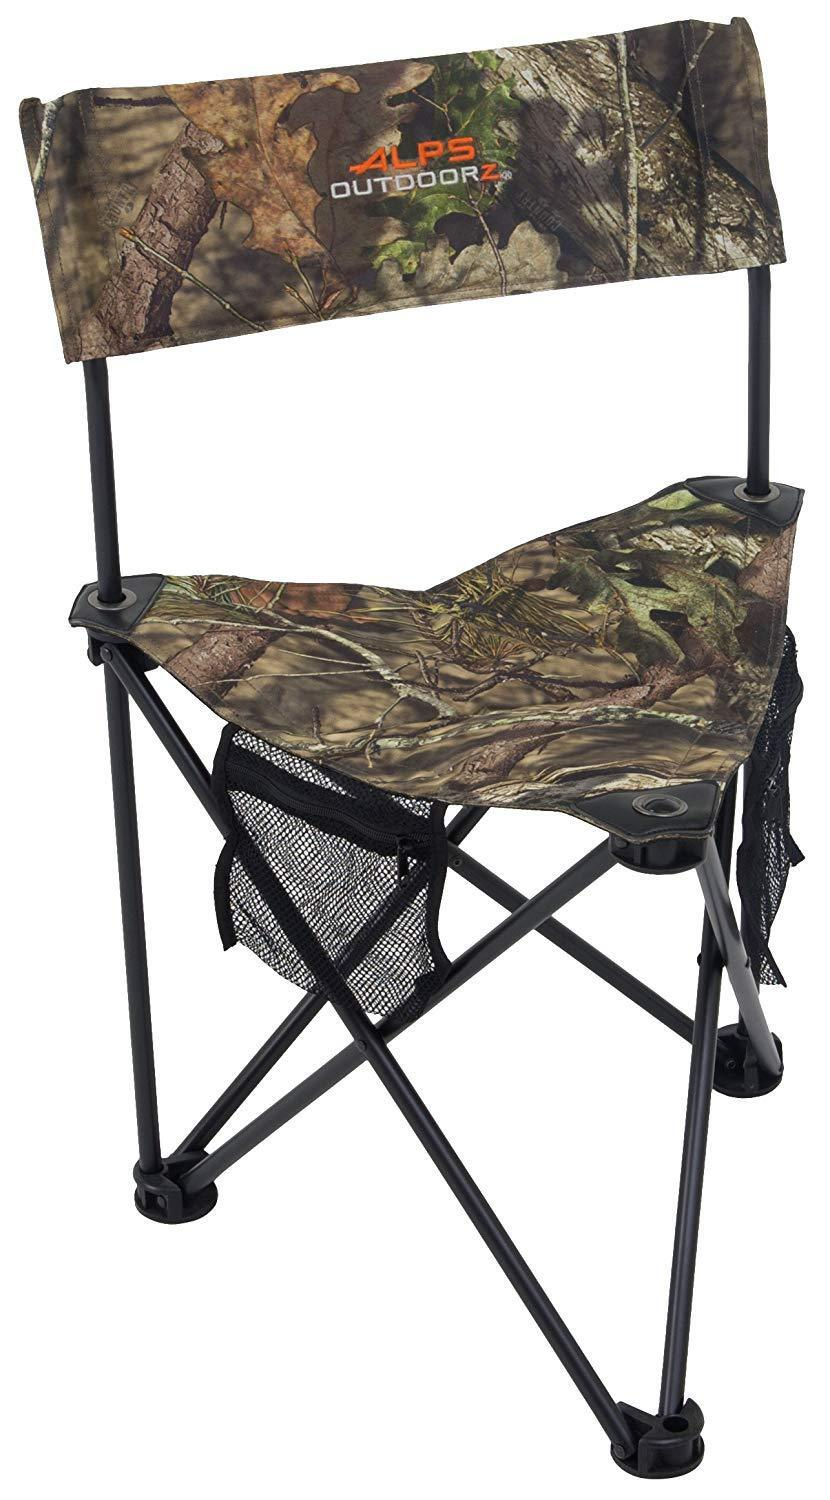 ALPS OutdoorZ Rhino MC Folding Mossy Oak Camo Camping / Hunting / Fishing Chair